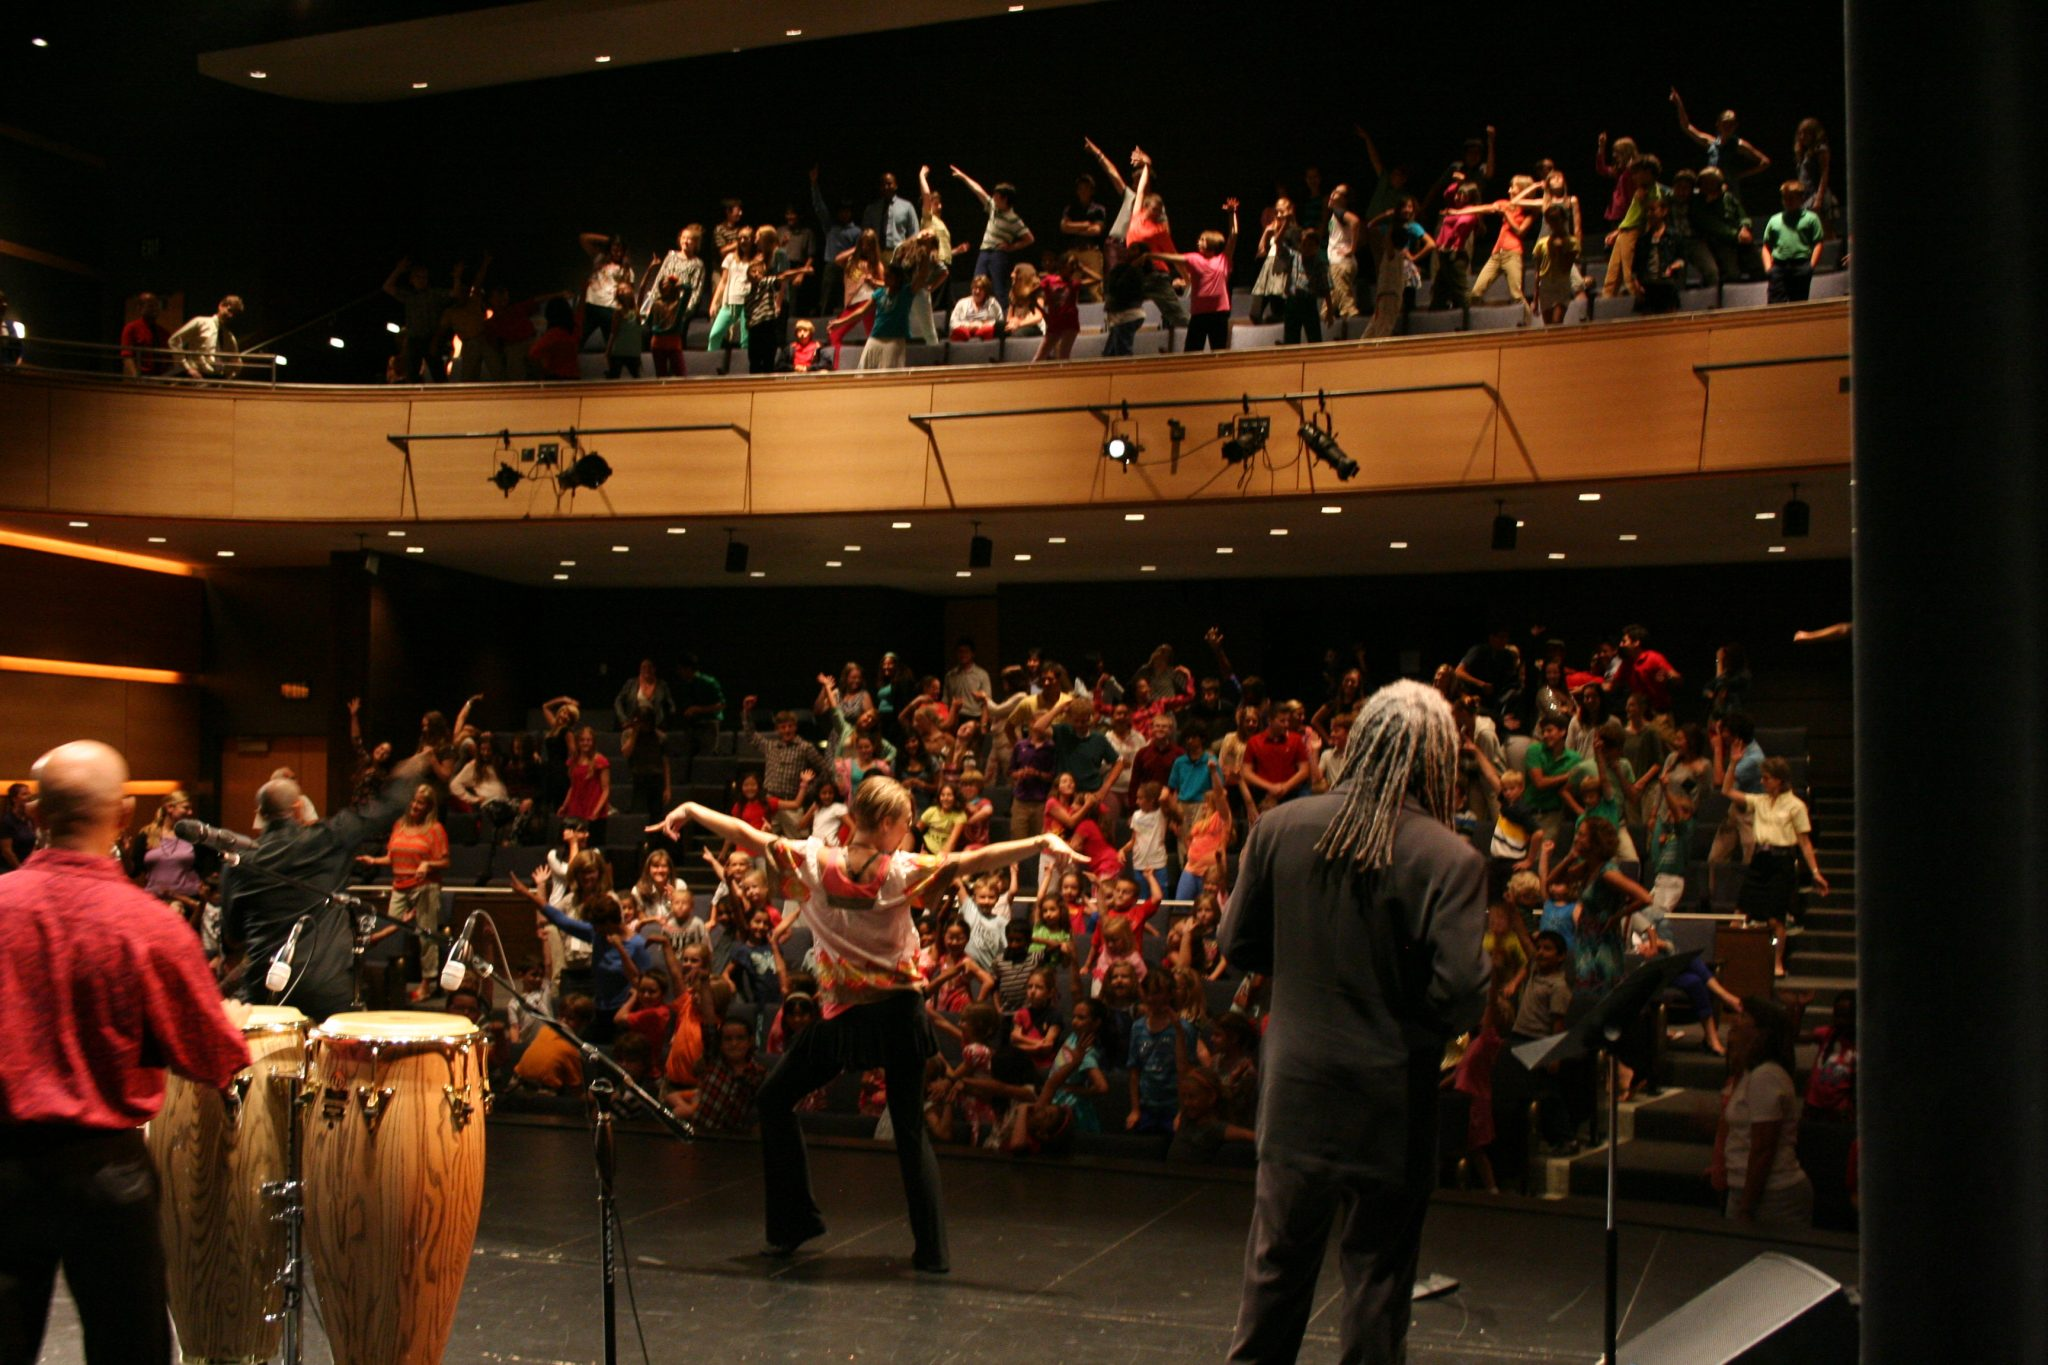 Performers entertain the audience in the TJ Concert Hall